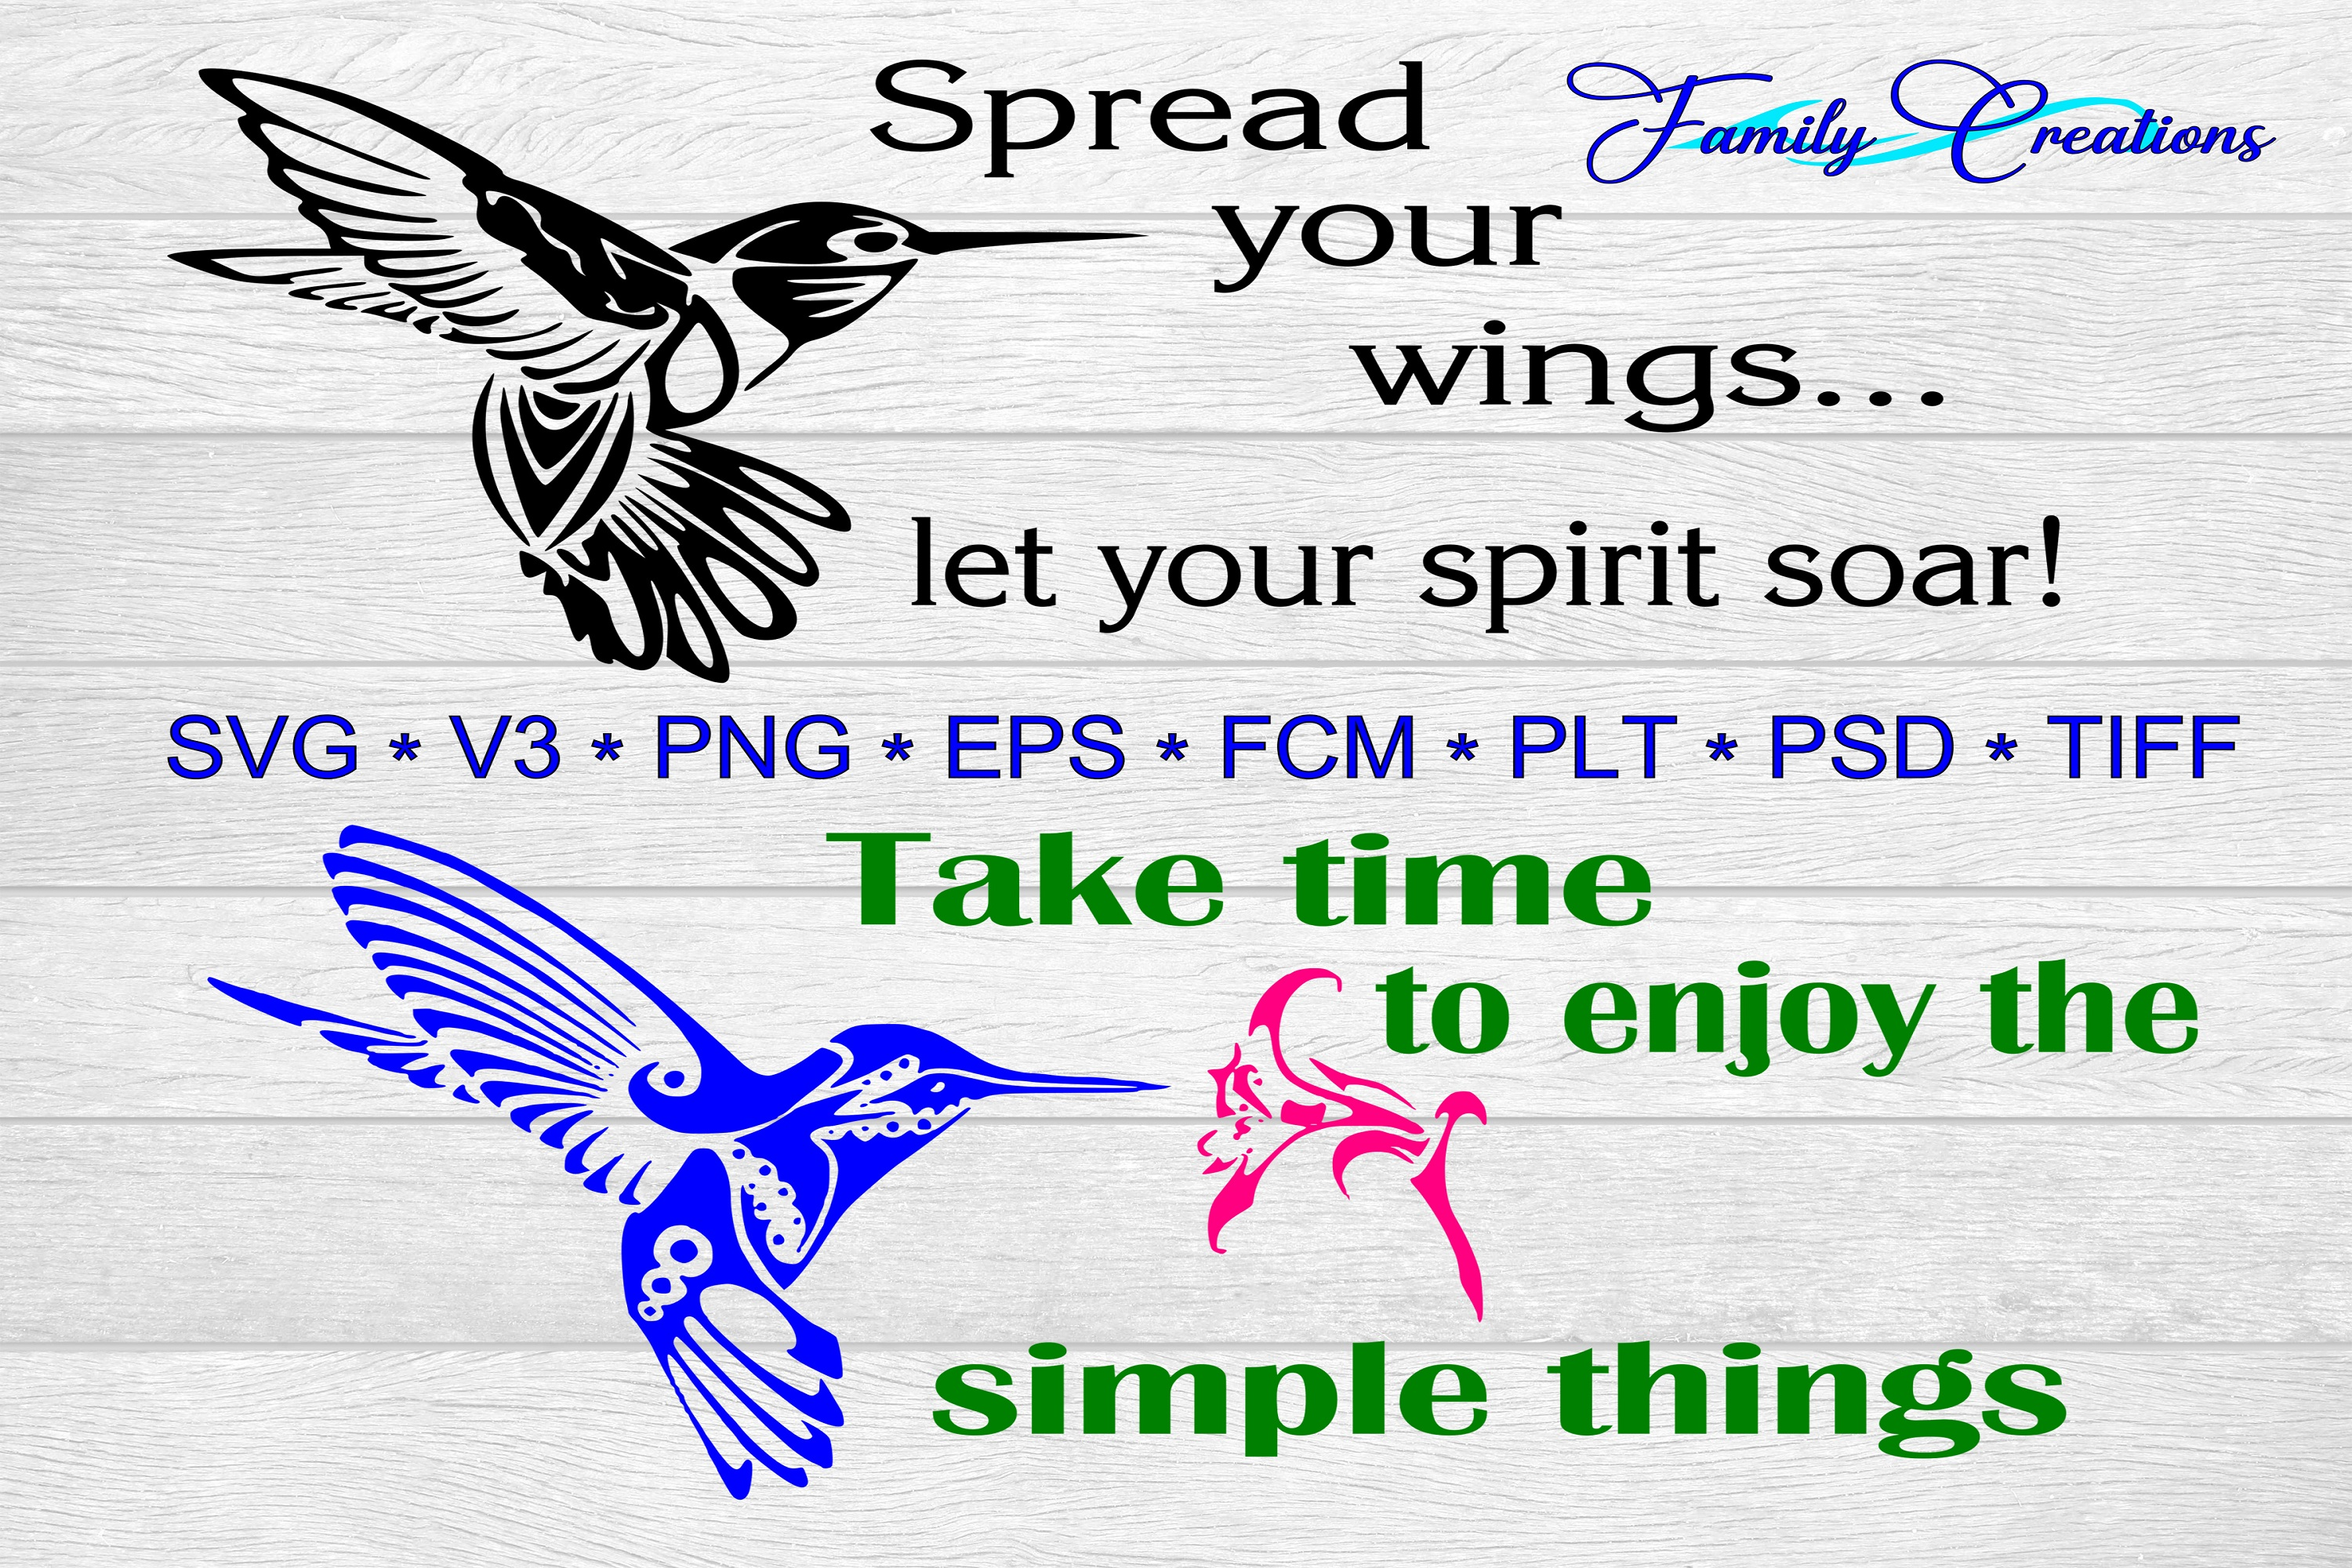 Download Free Spread Your Wings Let Your Spirit Soar Take Time To Enjoy The for Cricut Explore, Silhouette and other cutting machines.